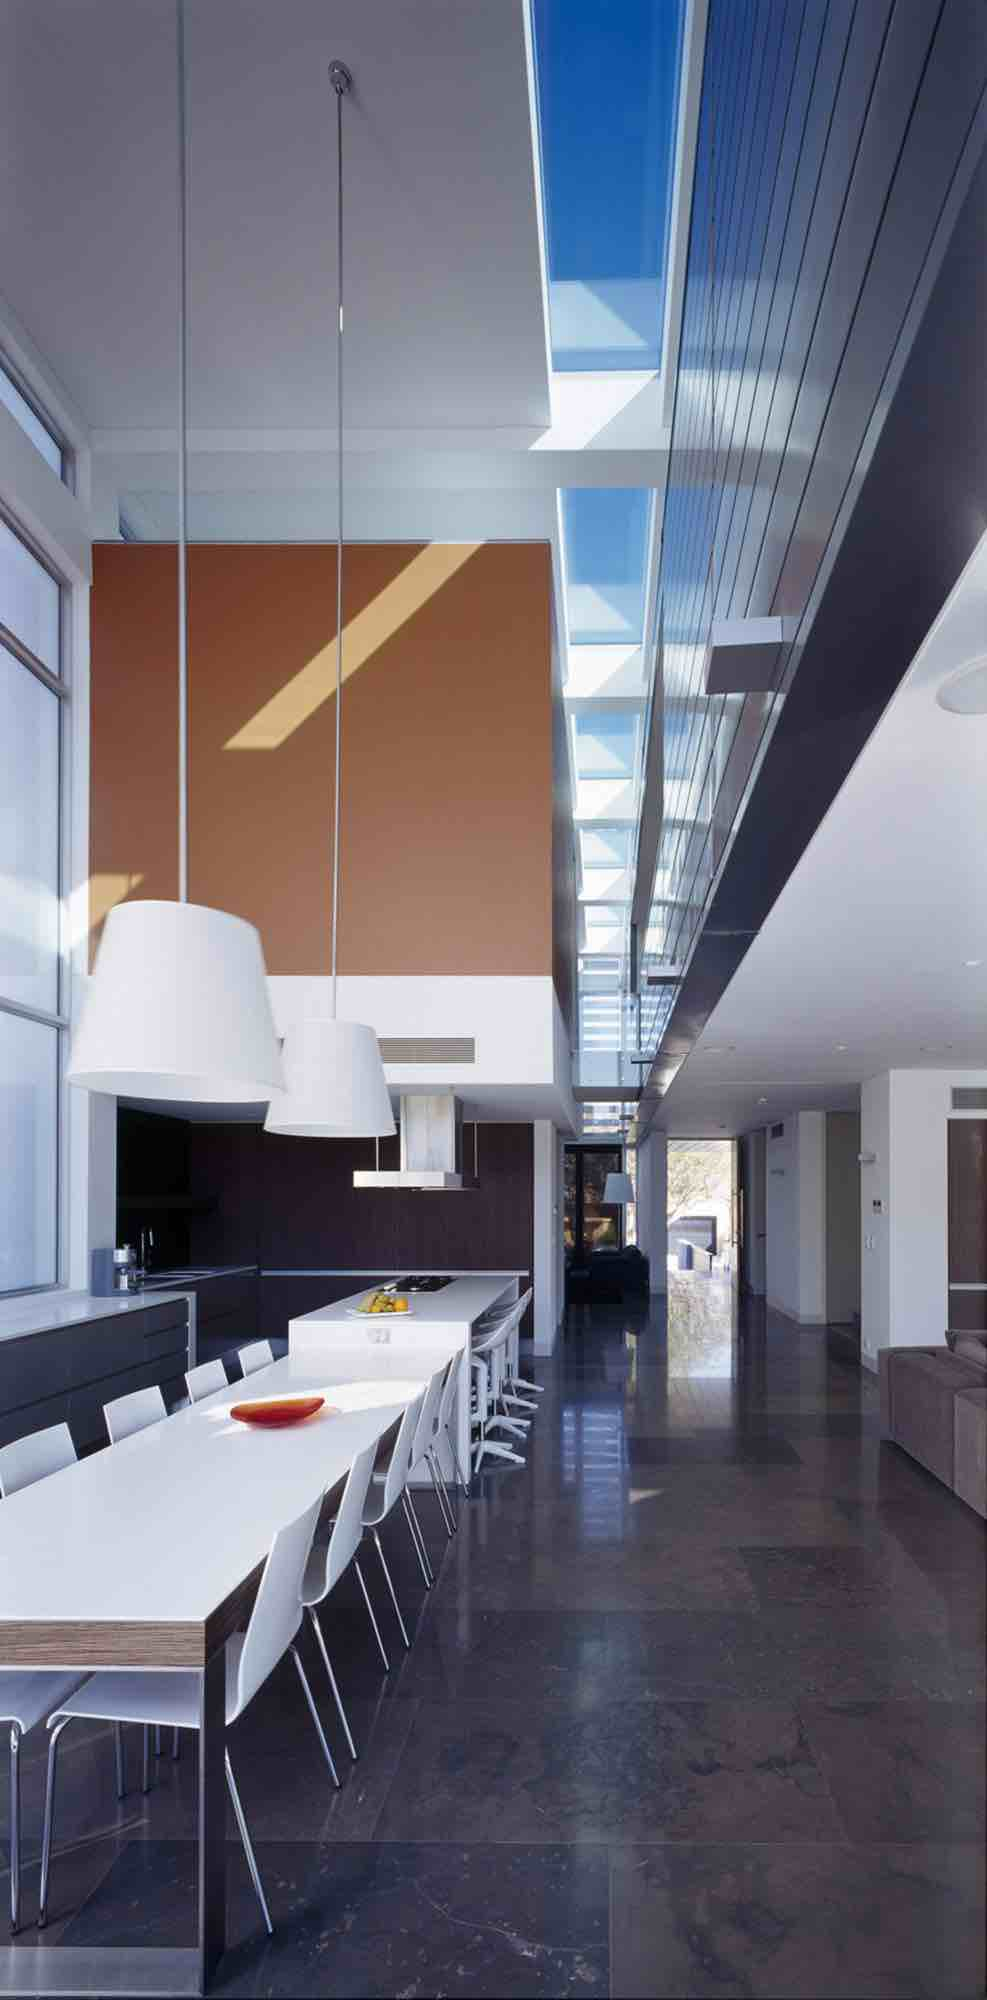 minosa-design-open-plan-high-ceiling-void-large-dinning-table-corian-benchtop-minosa-kitchen-gilda-05